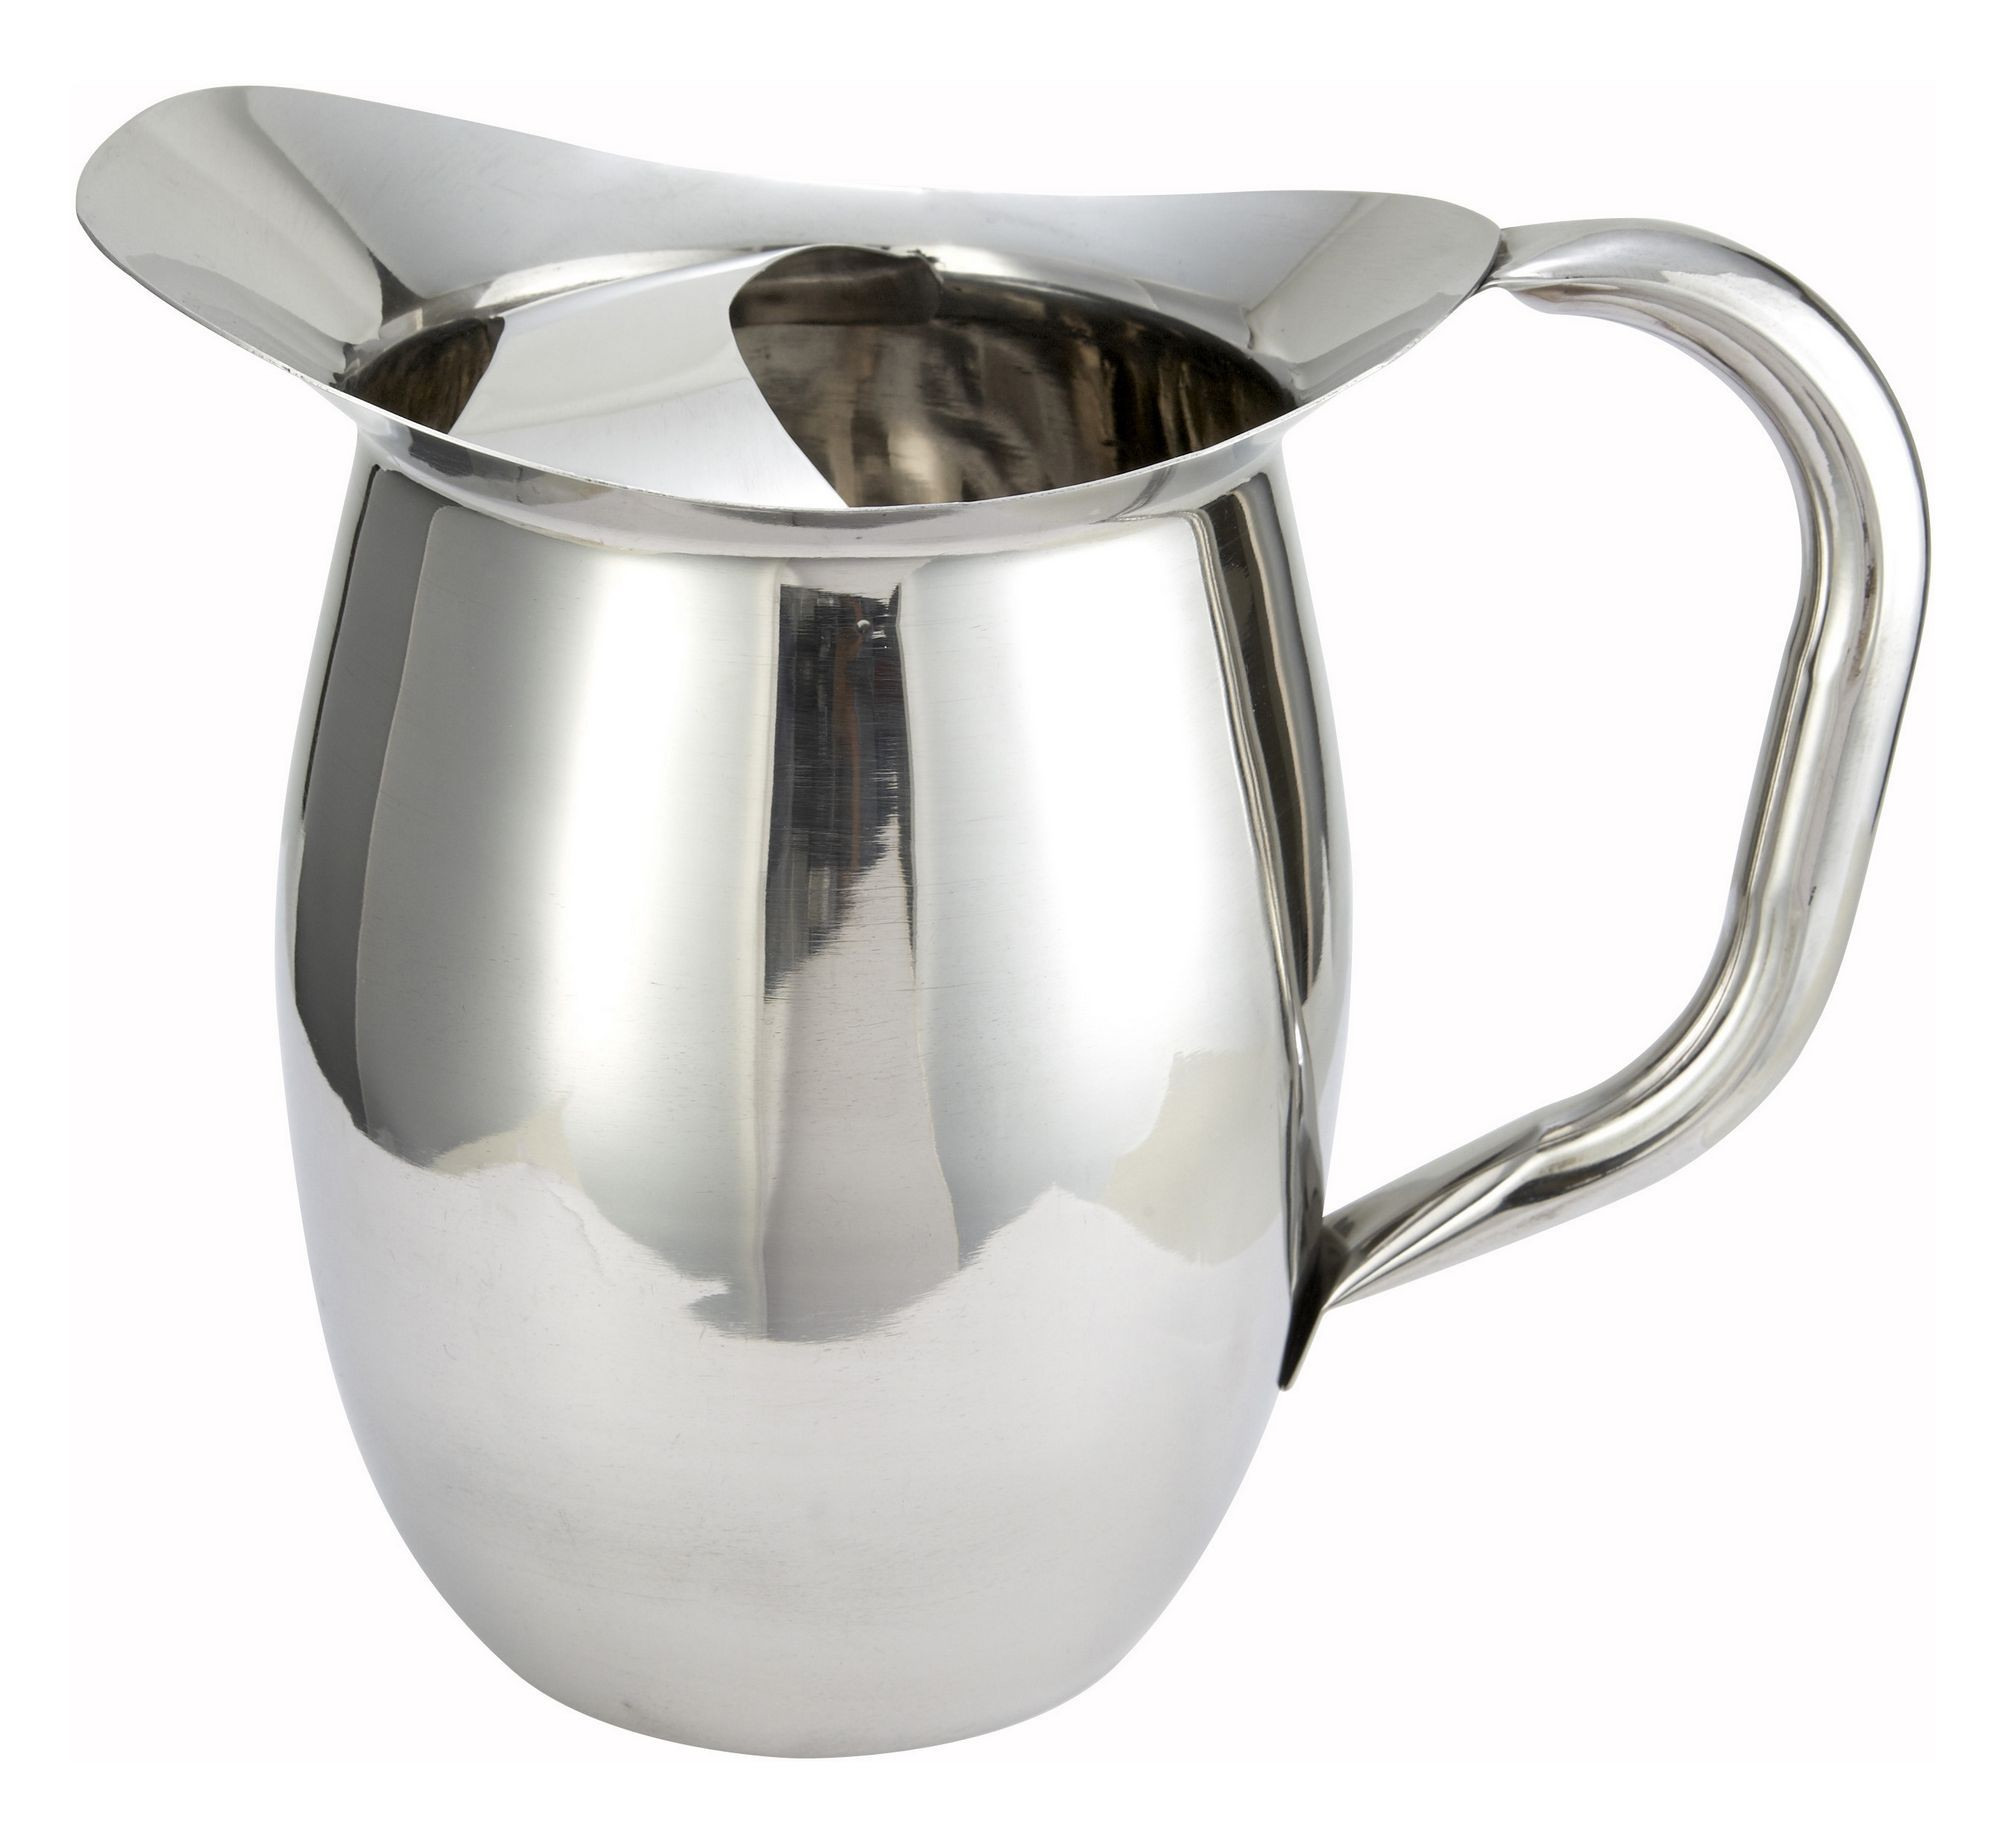 Stainless Steel Deluxe 2-Quart Bell Water Pitcher With Ice Catcher